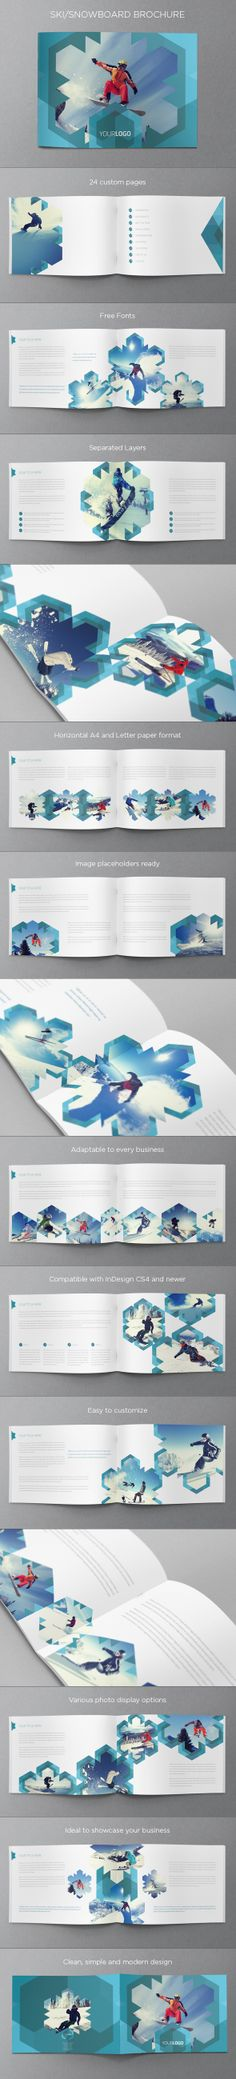 Ski & Snowboard Winter Brochure. Download here: http://graphicriver.net/item/ski-snowboard-winter-brochure/6278651?ref=abradesign #design #brochure